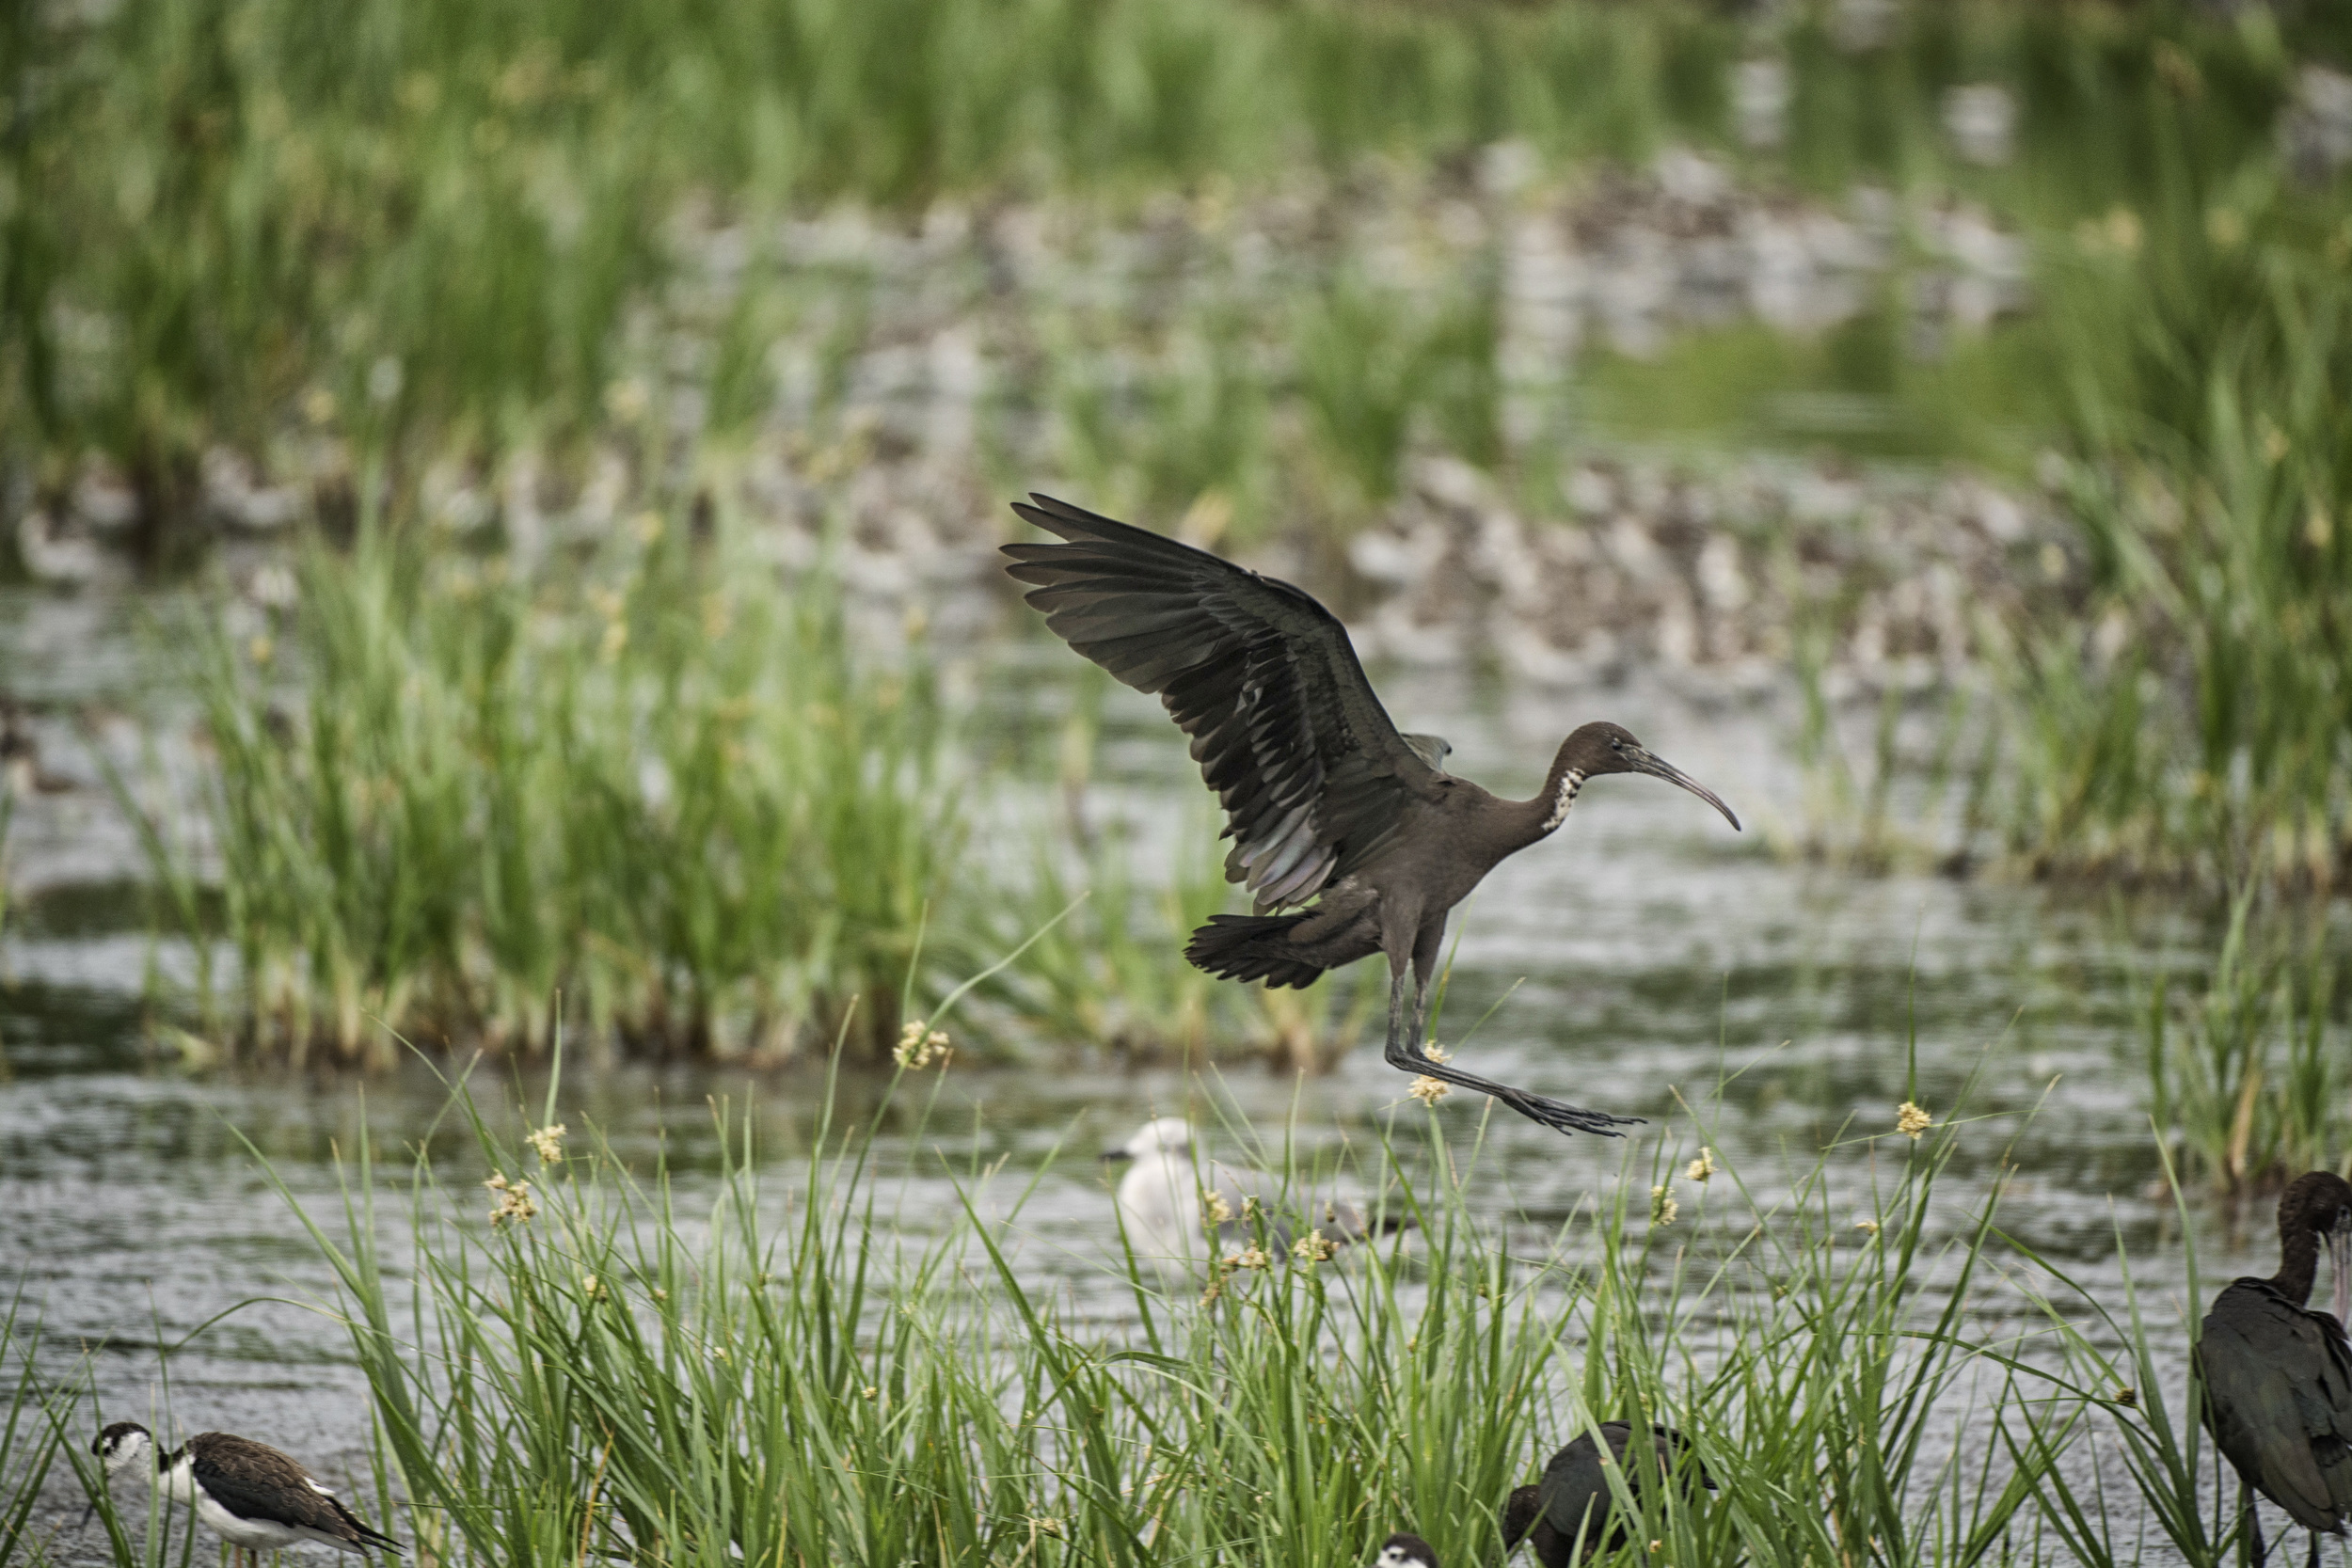 Glossy Ibis landing at Bombay Hook NWR